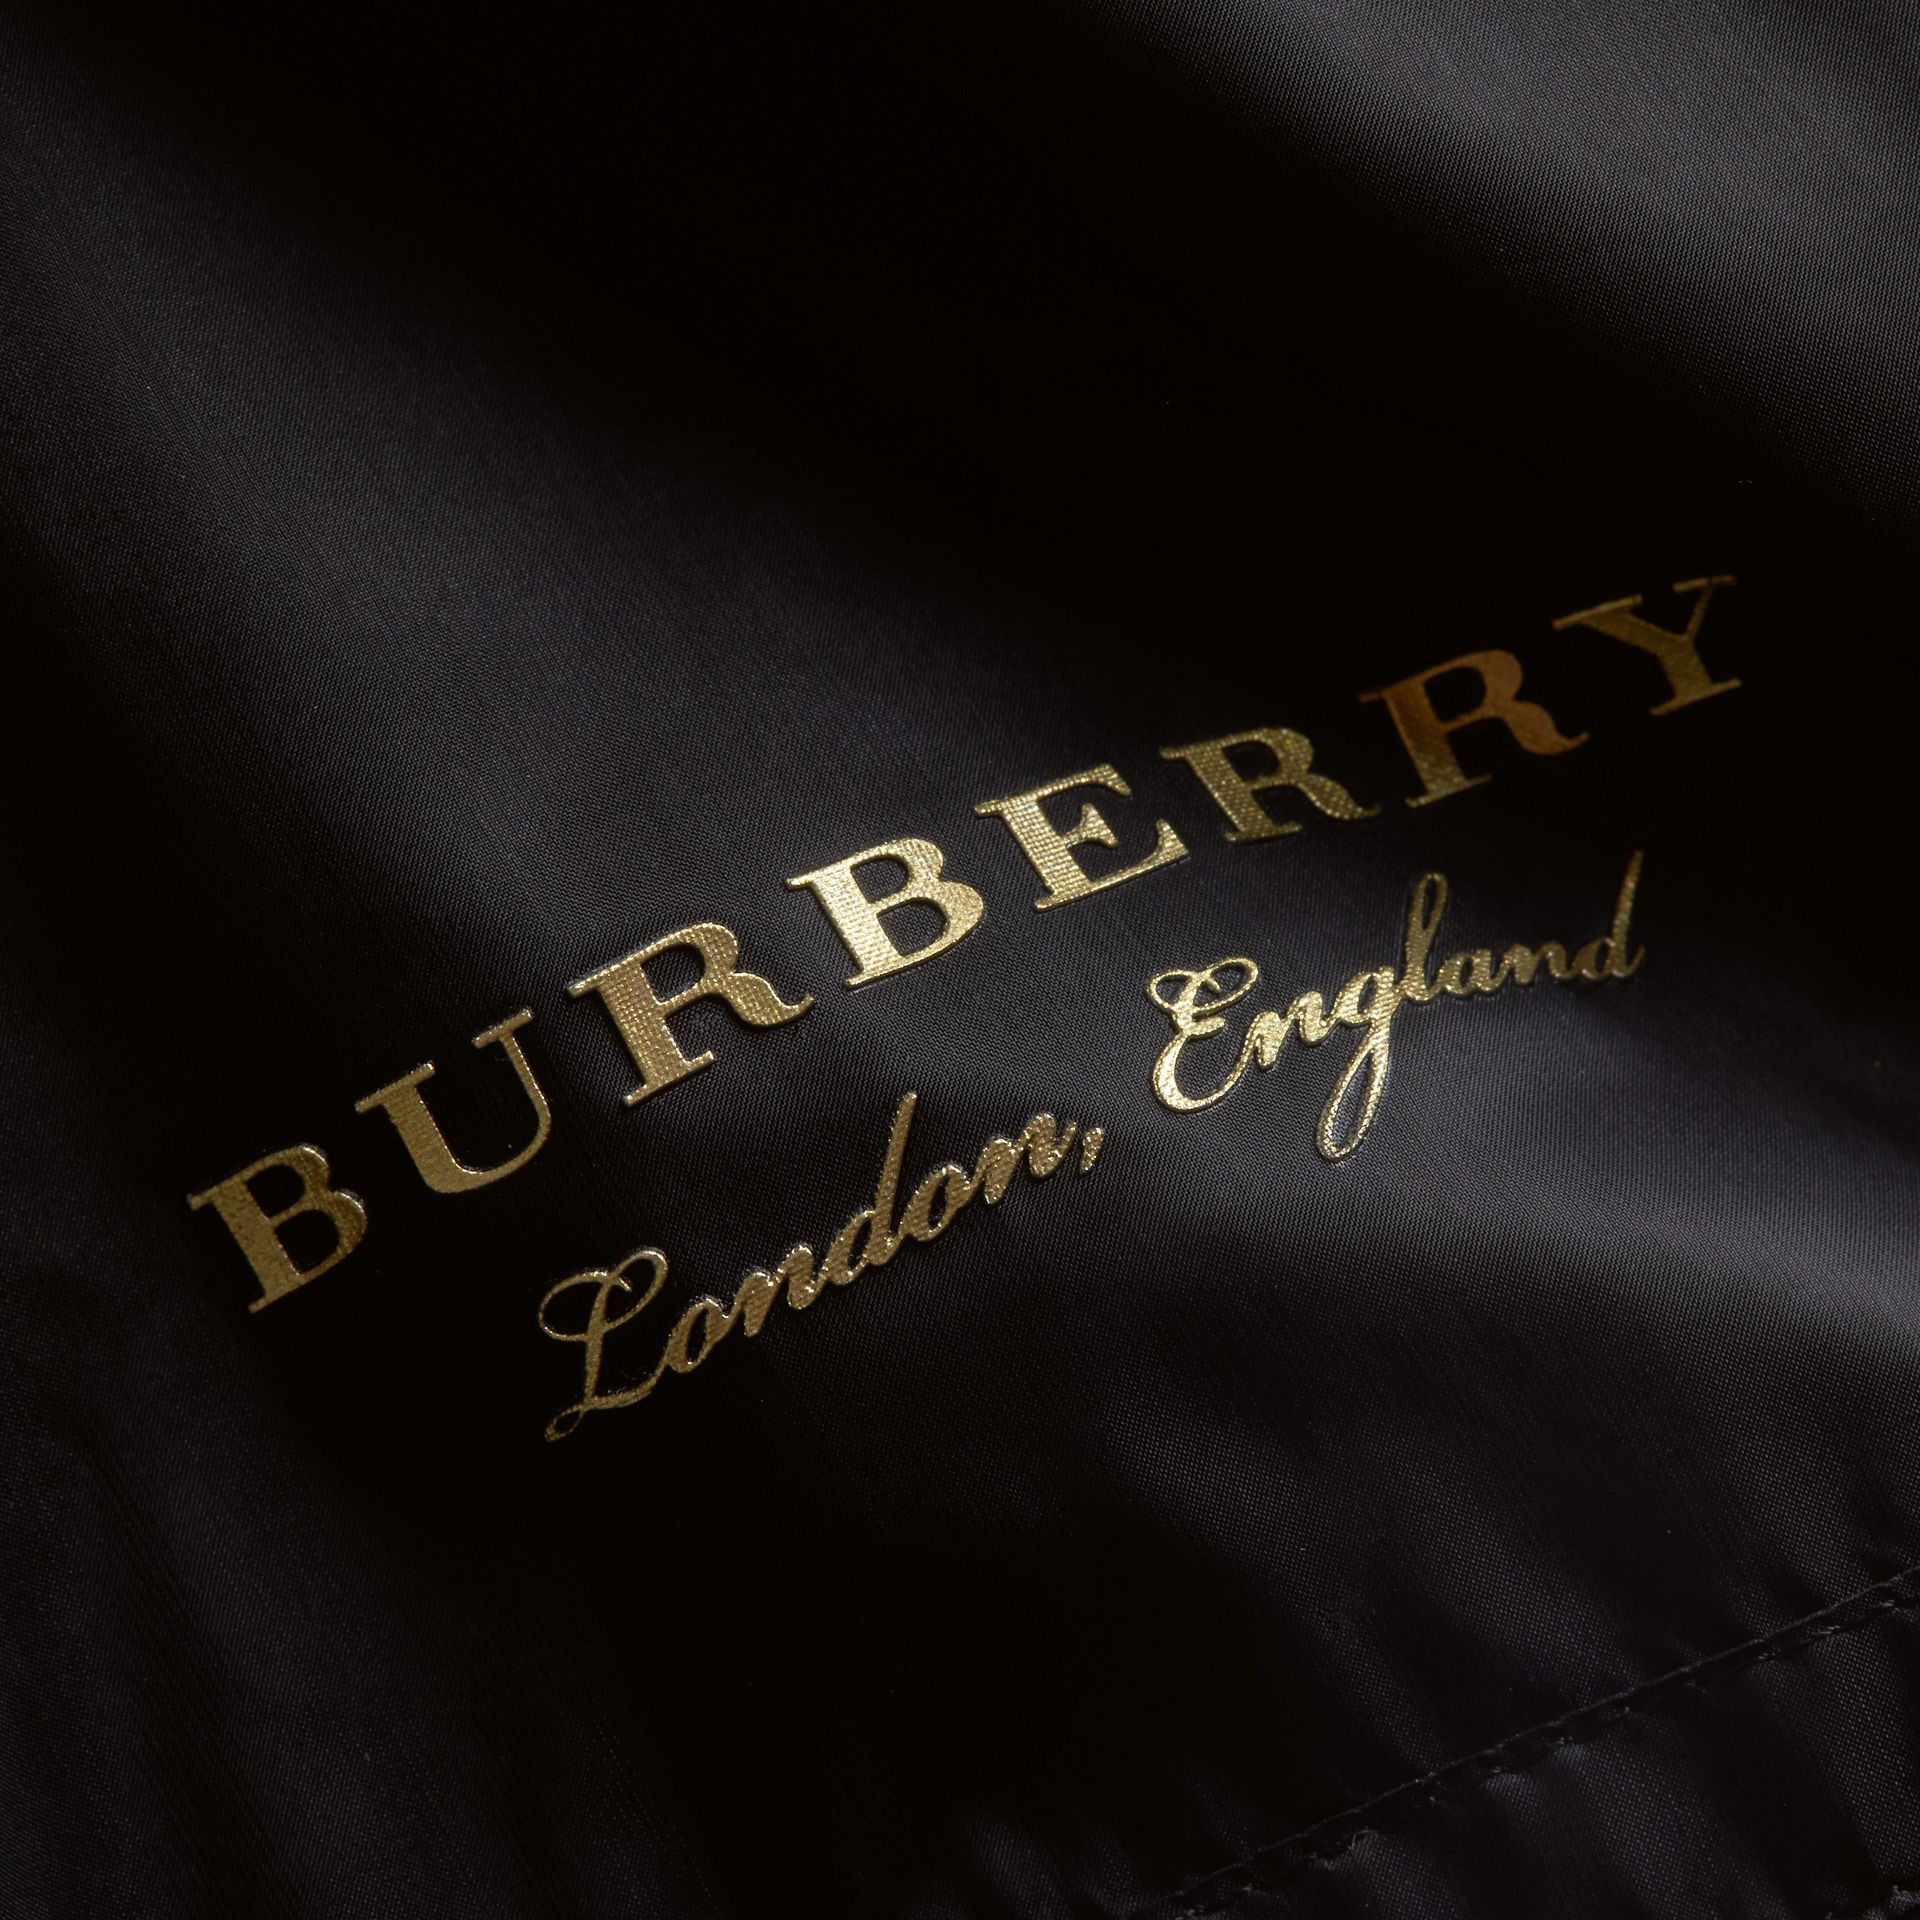 Lightweight Bomber Jacket in Black - Women | Burberry Canada - gallery image 2